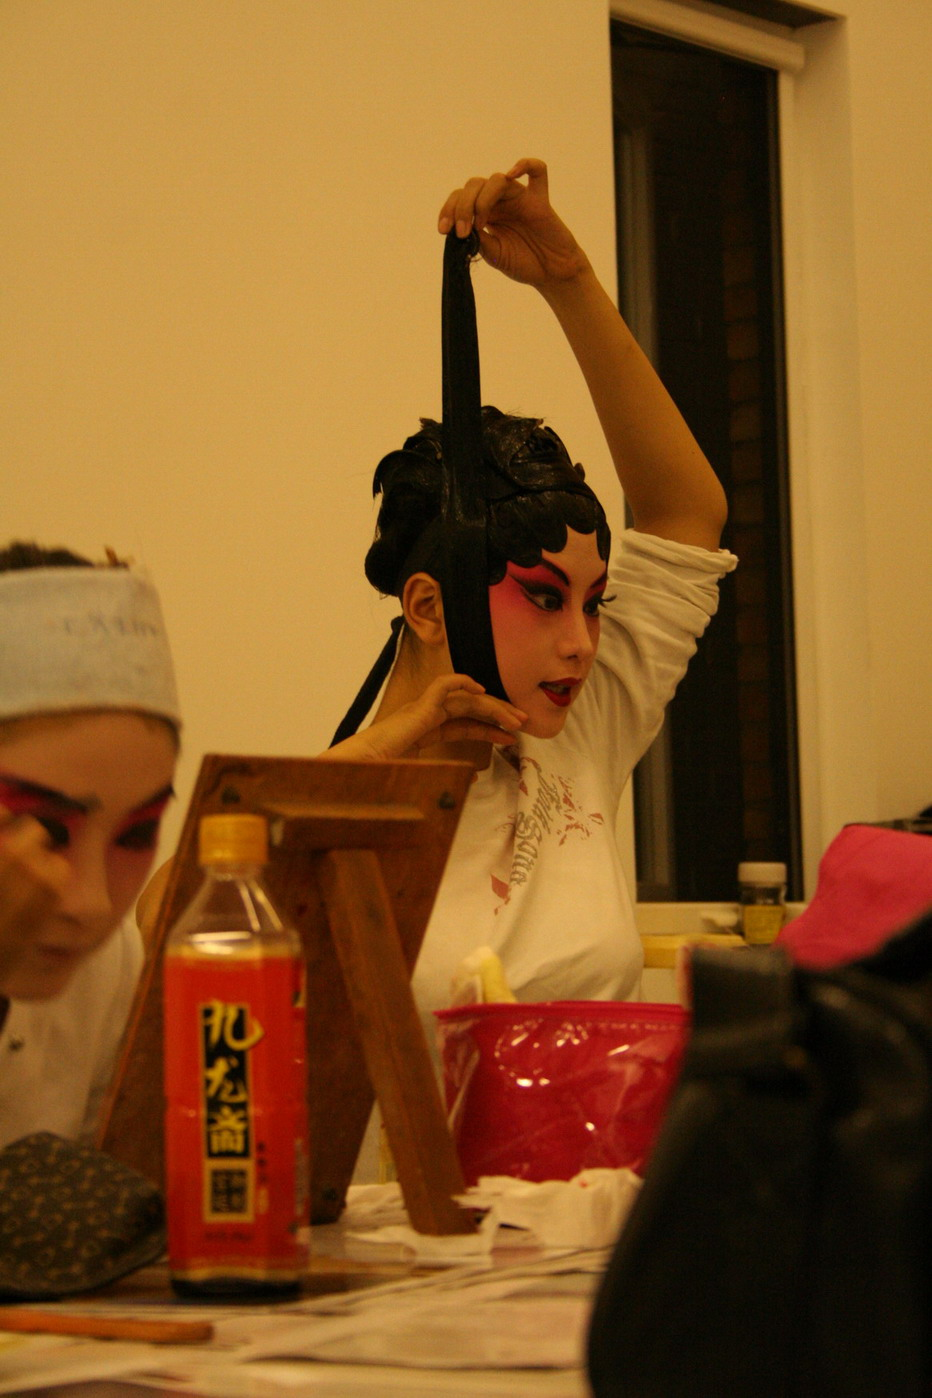 Our last event, a Mid-Autumn Festival kunqu opera night